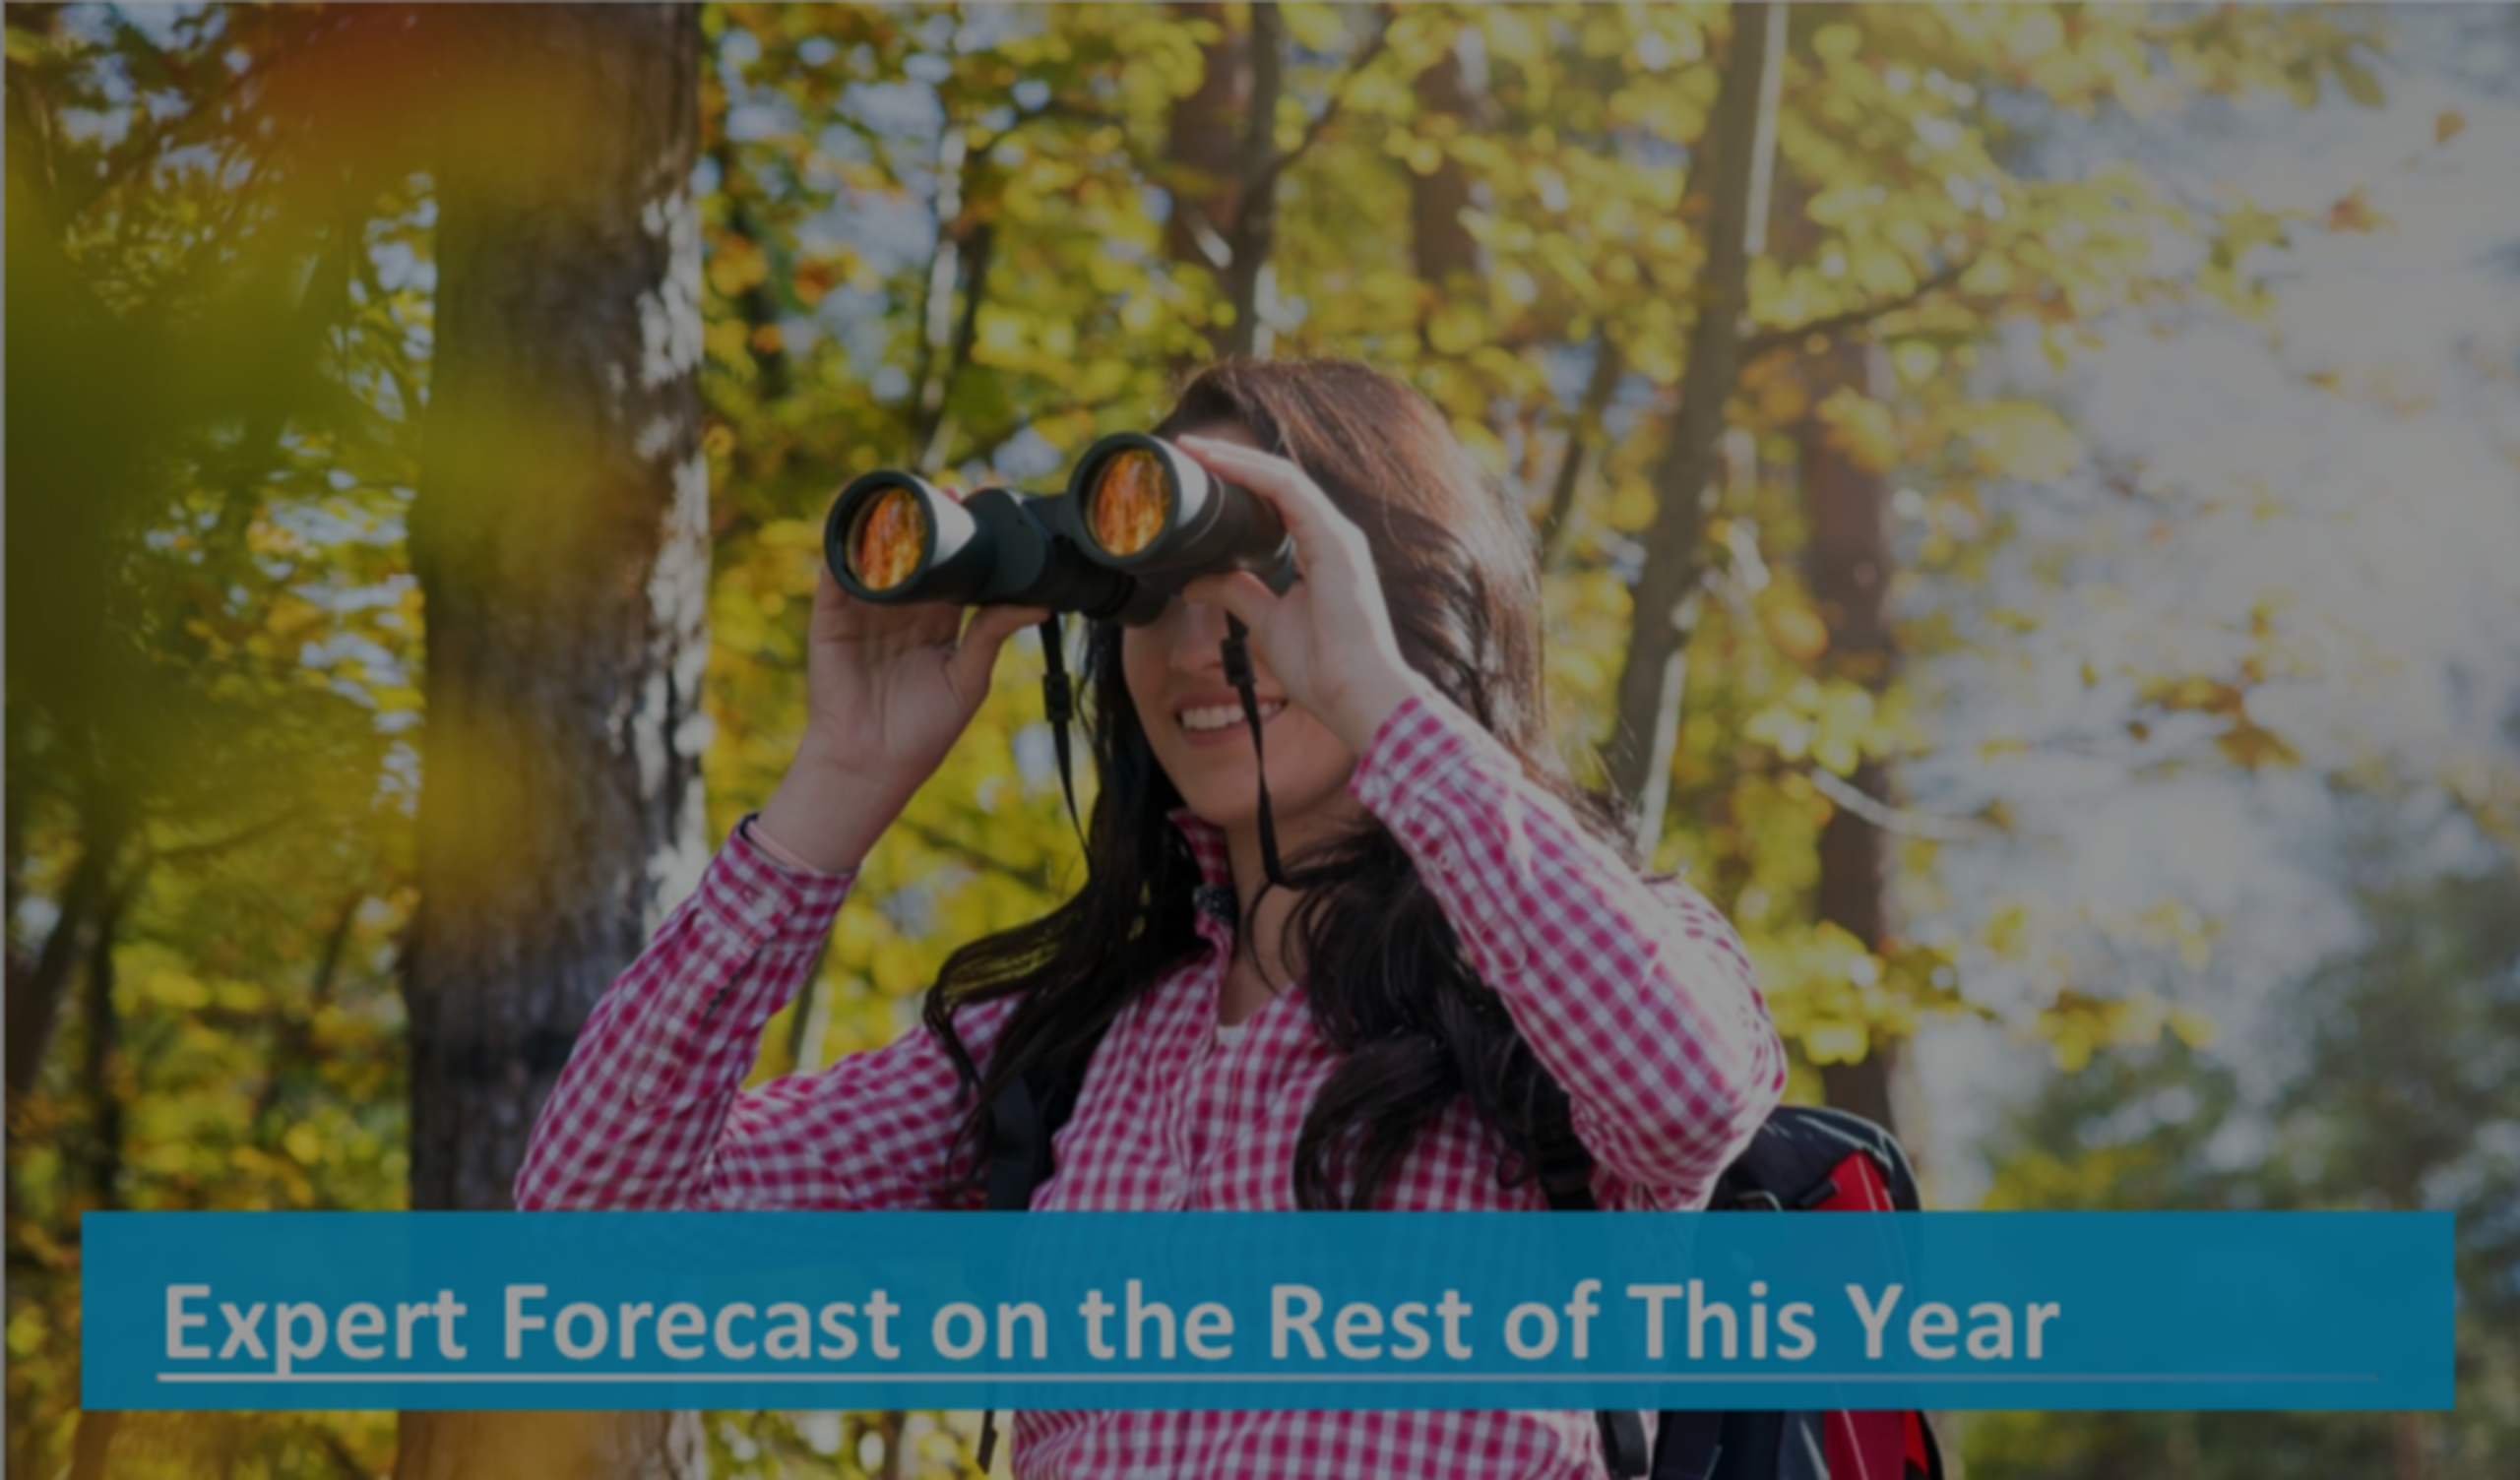 Expert Forecast on the Rest of This Year